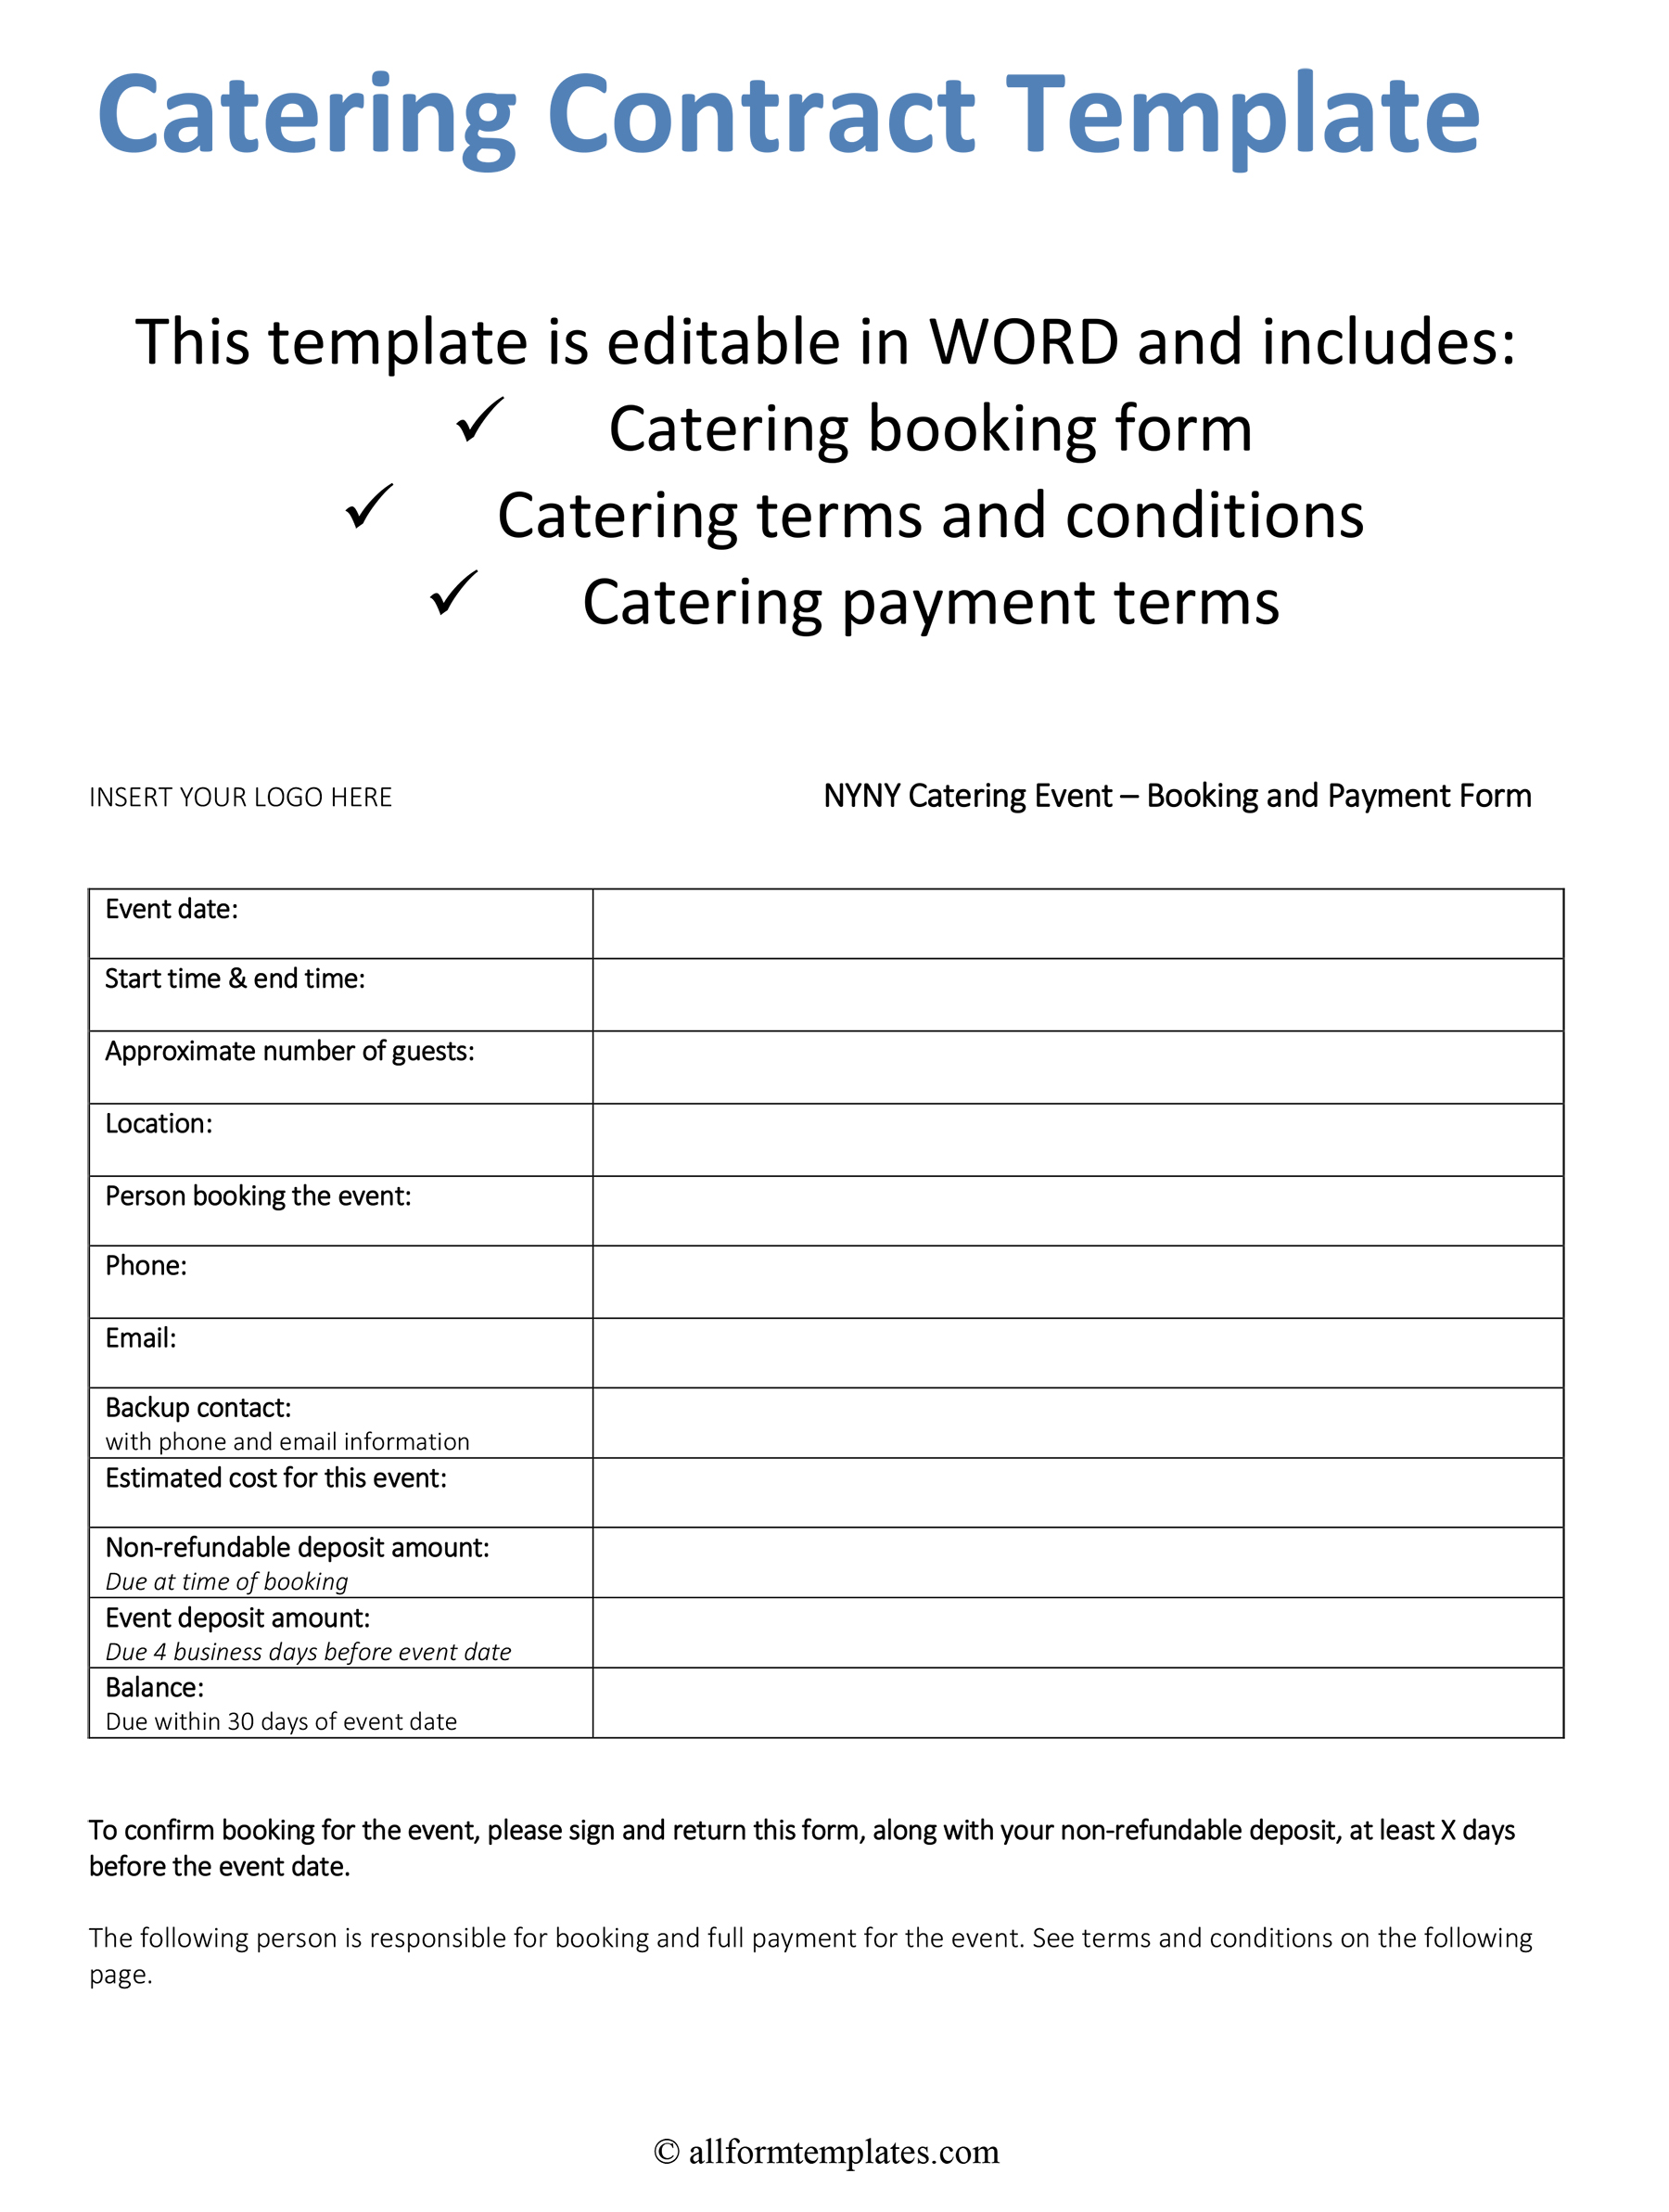 Catering-proposal-contract-template-NEW-HD